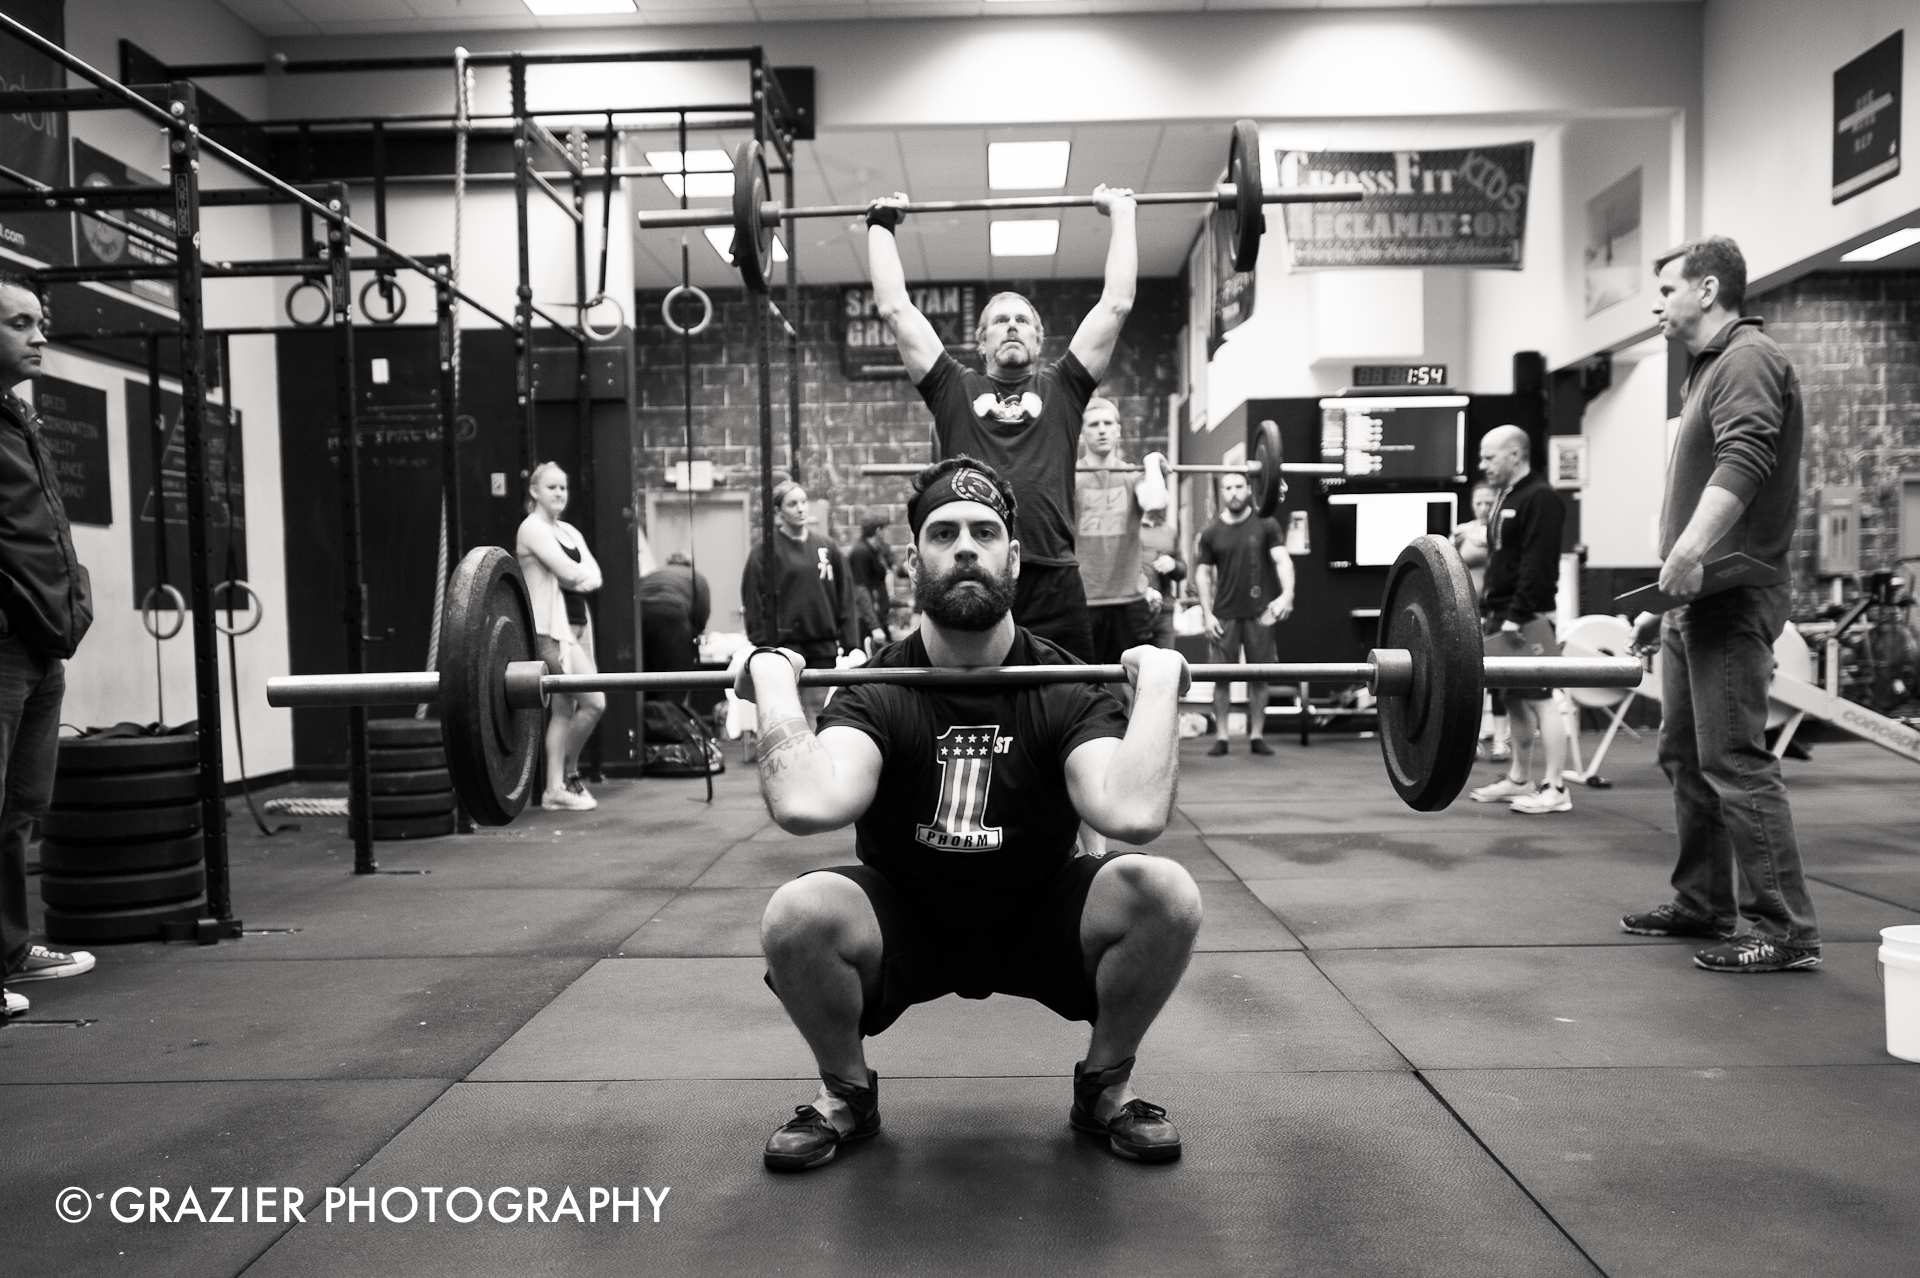 Grazier_Photography_Crossfit_150328-62.JPG